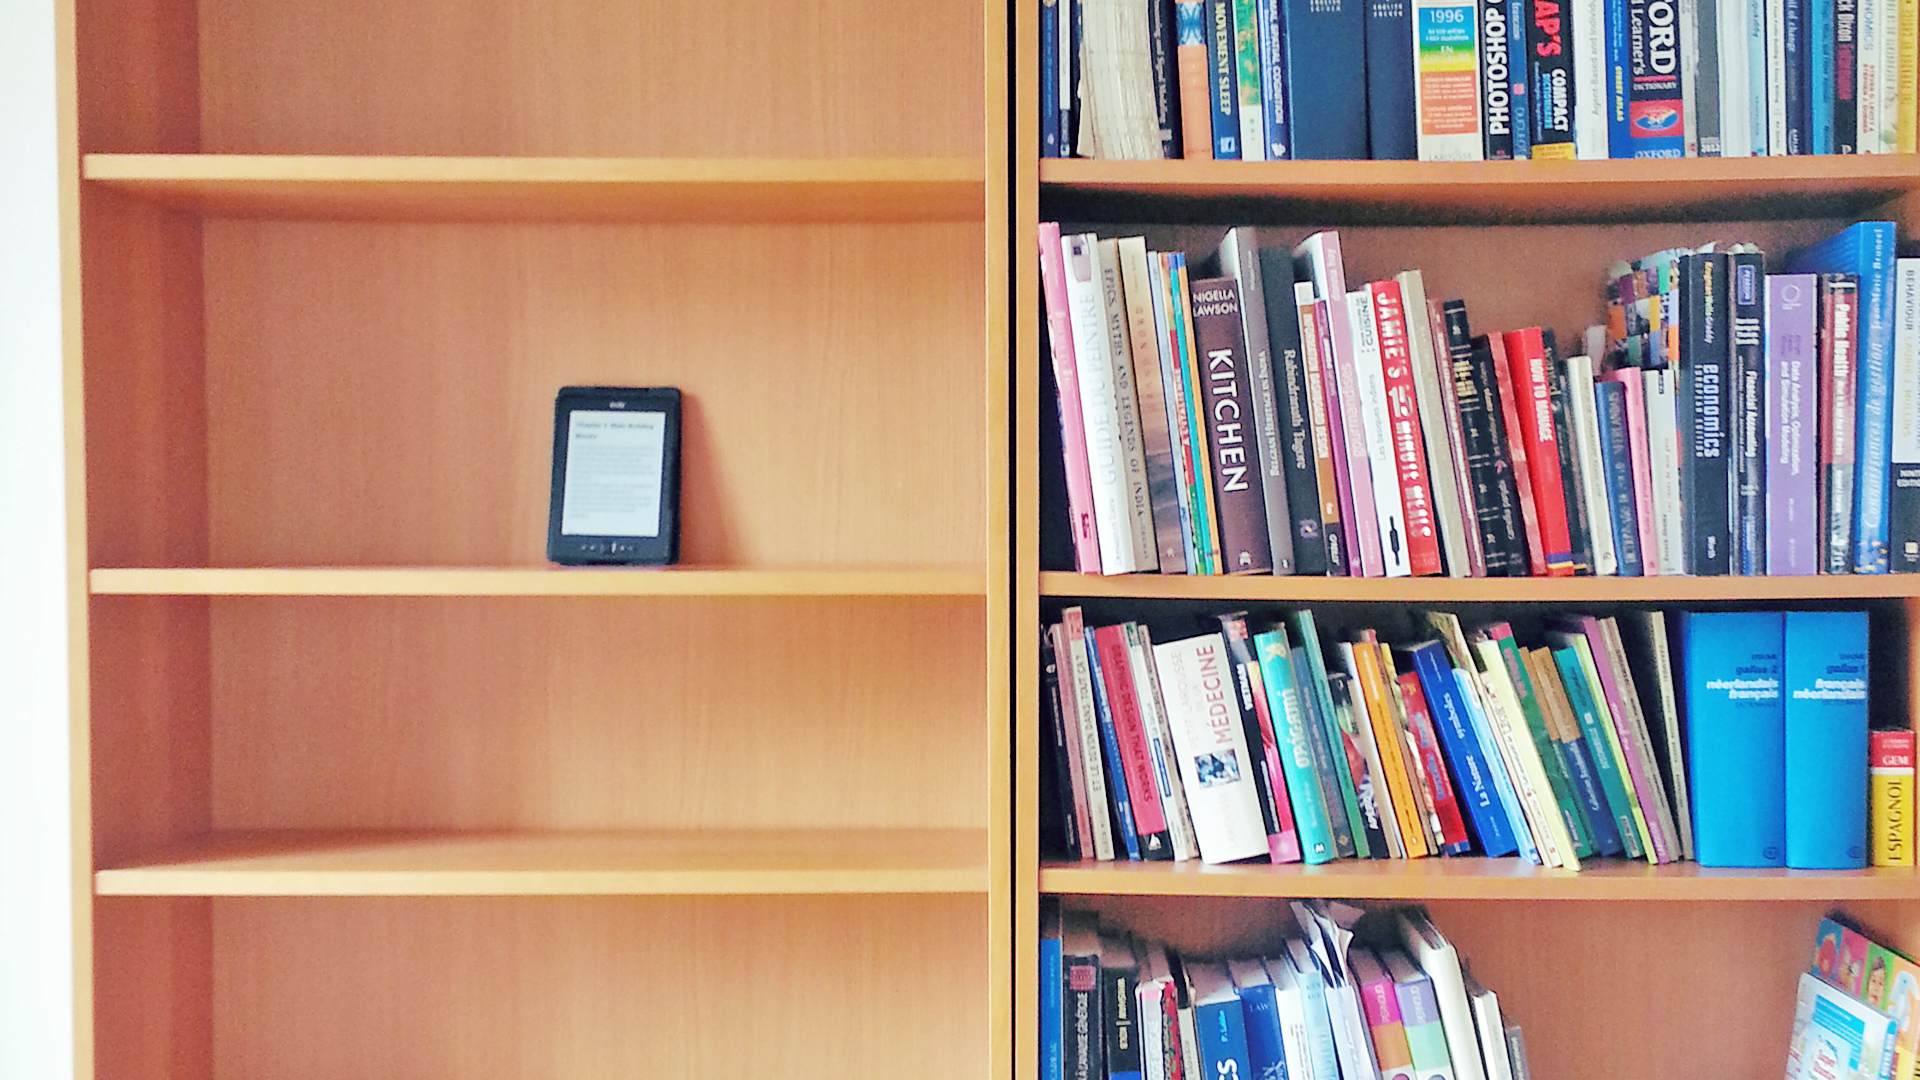 92 Percent of Students Prefer Paper Books Over E-Books